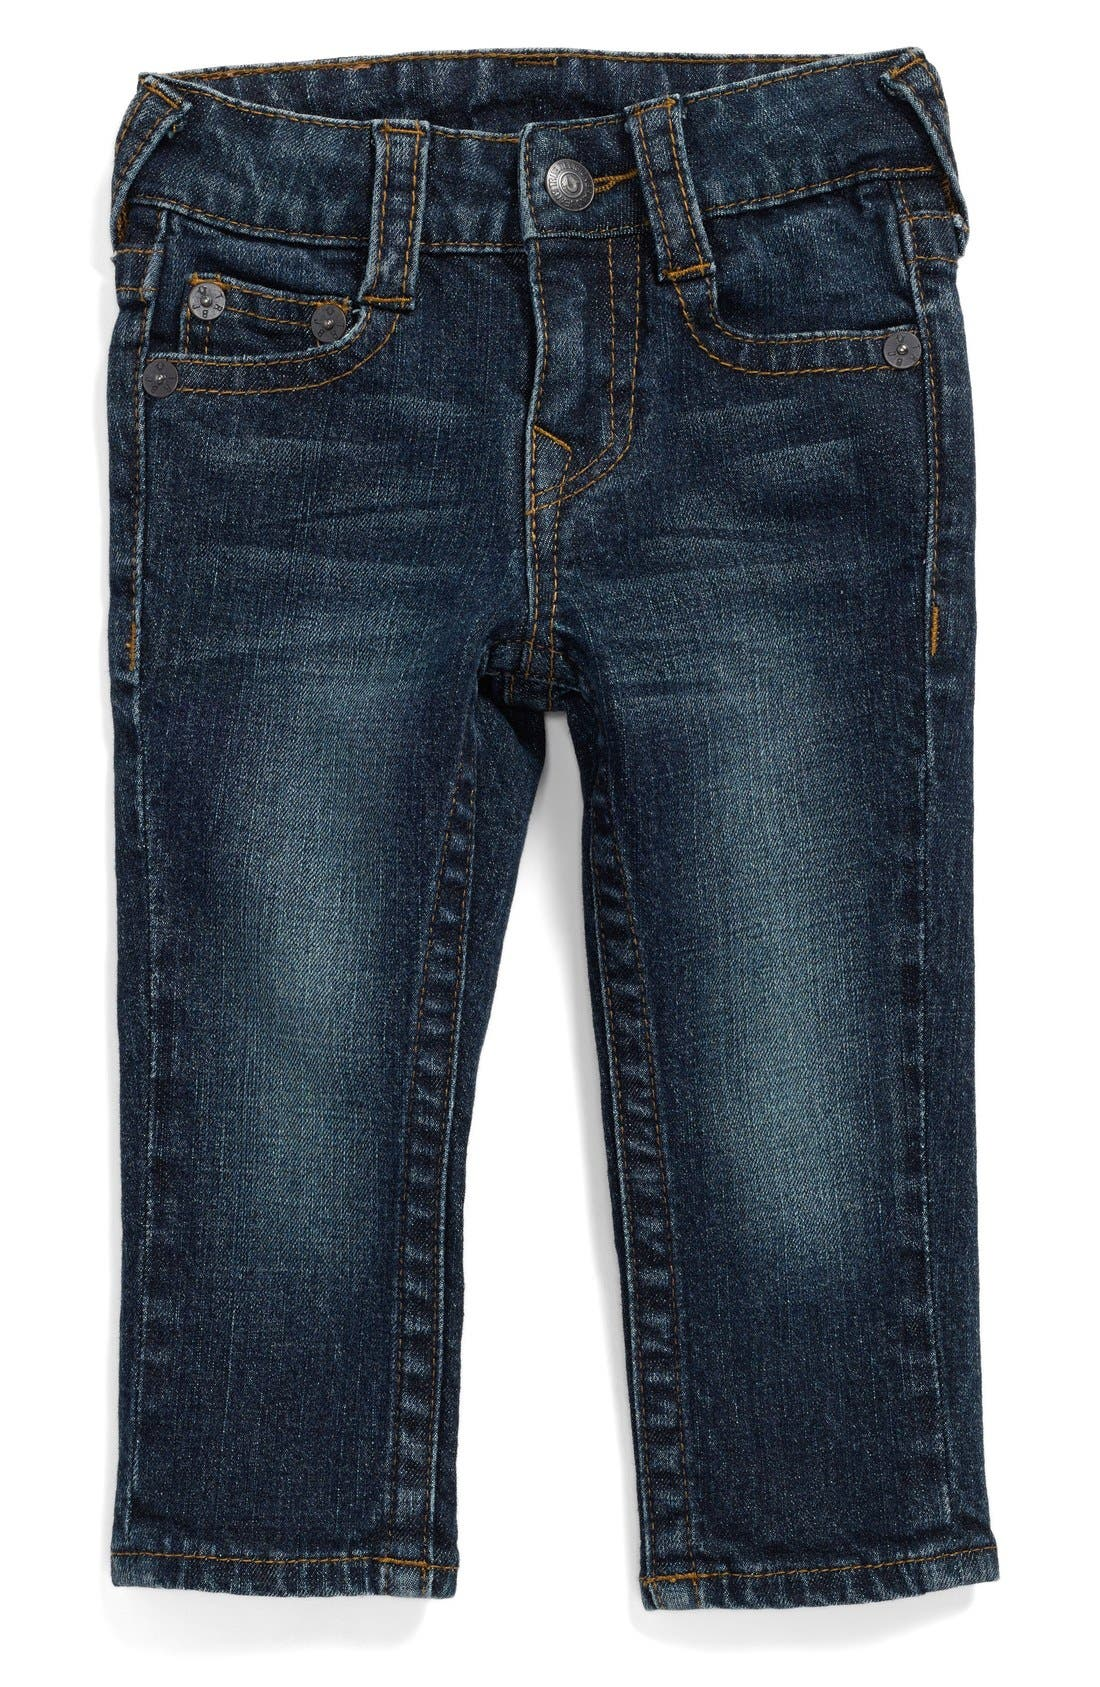 'Geno' Relaxed Slim Fit Classic Jeans,                             Main thumbnail 1, color,                             INDIGO BLAST